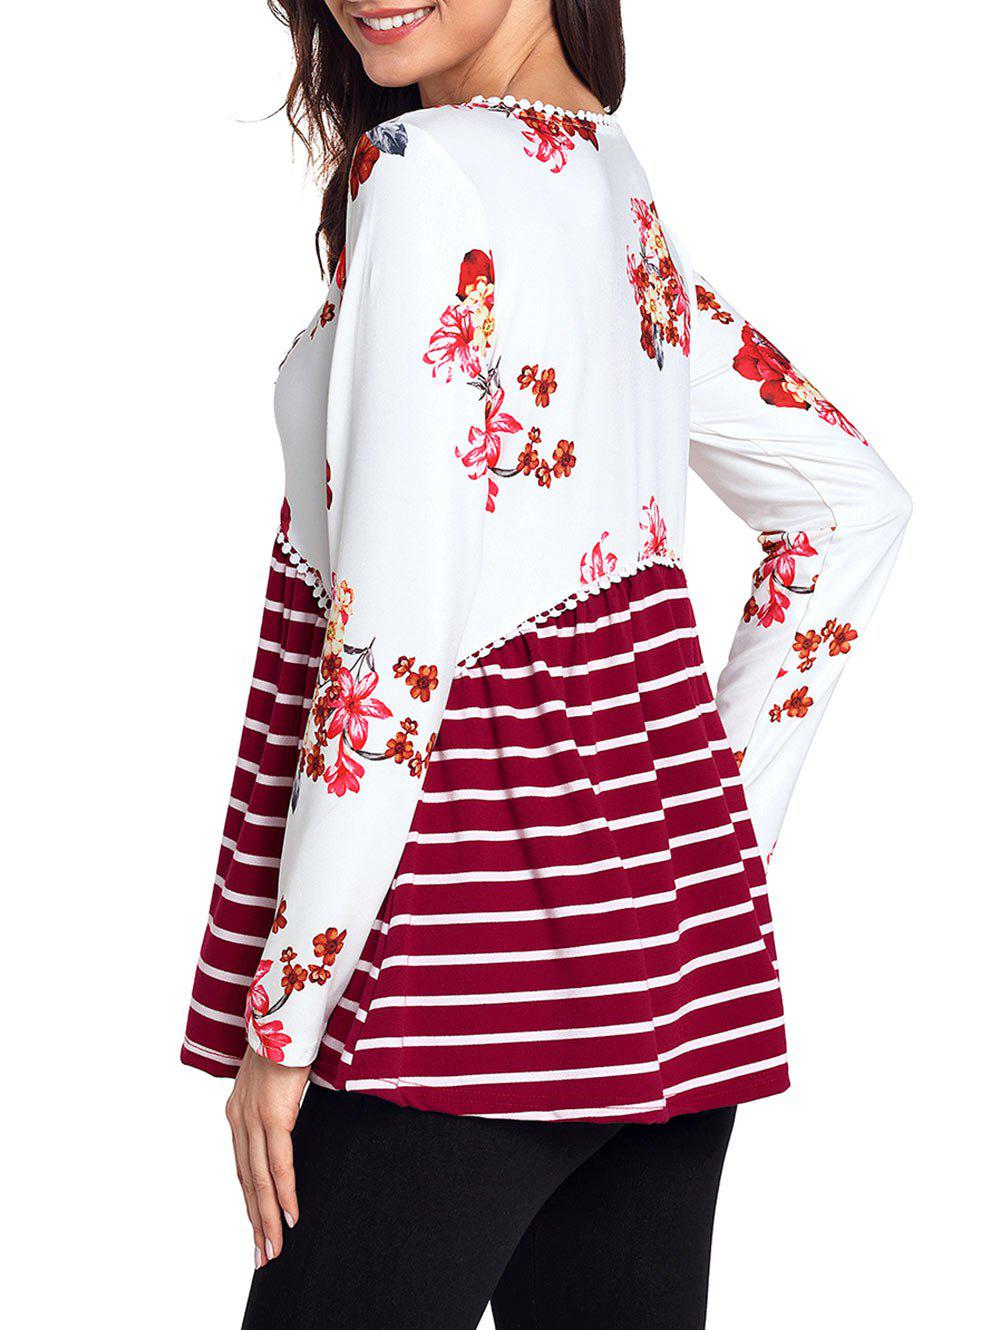 Trimmed Floral and Striped Tunic Top - RED L